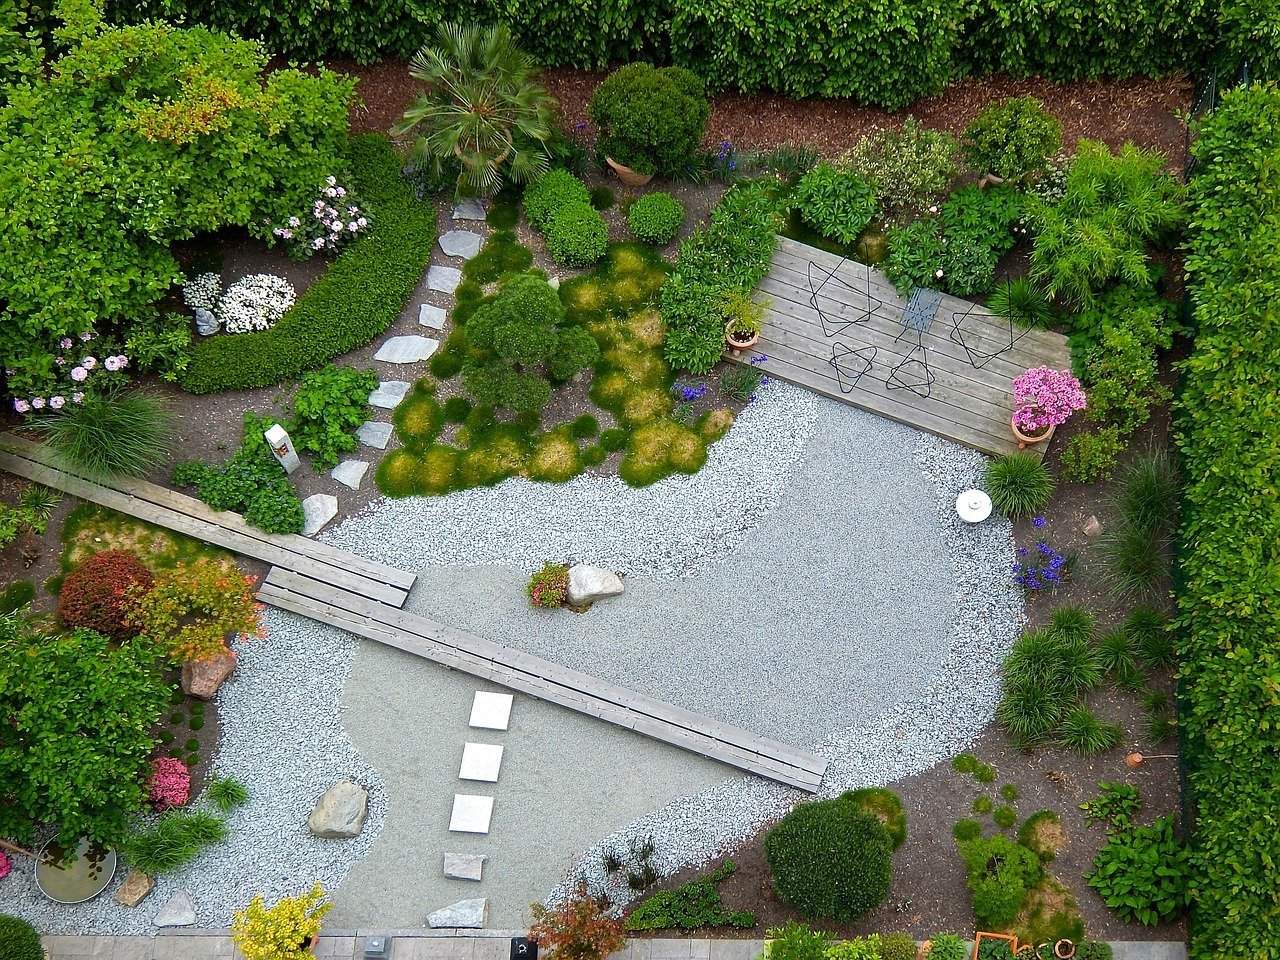 image - The Sustainable Landscaping Solutions for a Cleaner and Greener World